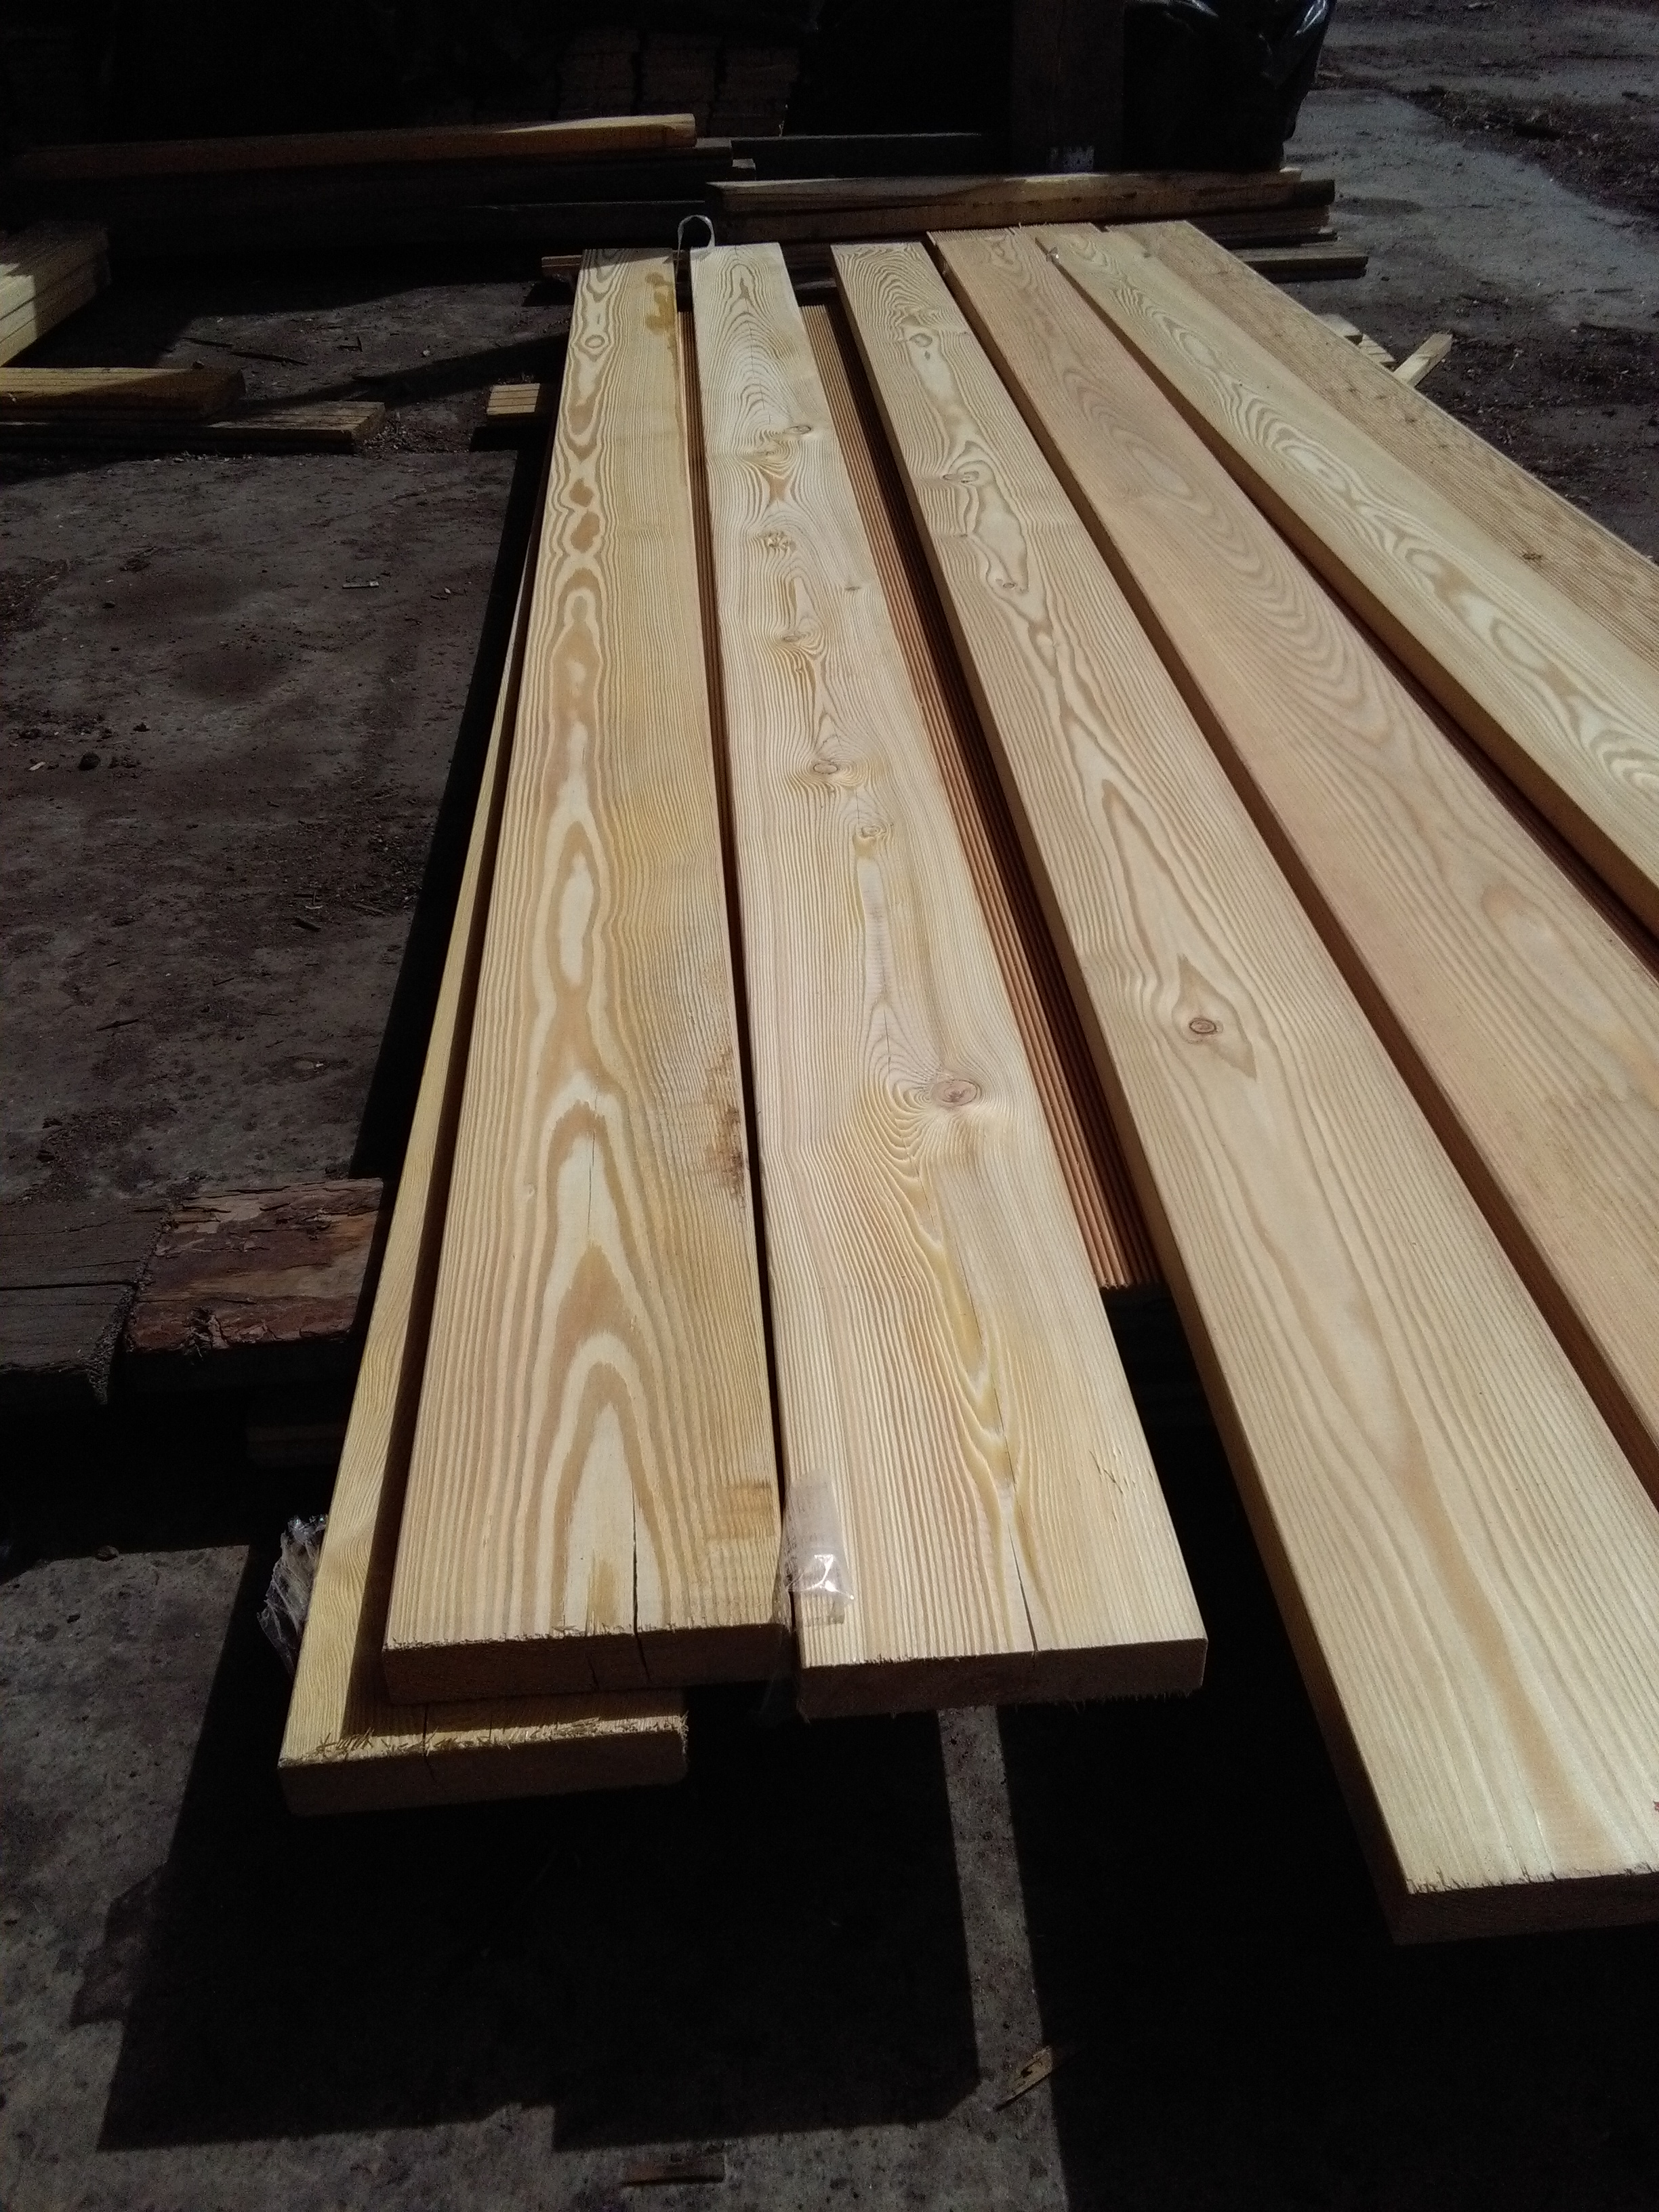 Llc bozhena production of siberian larch decking for Timber decking thickness